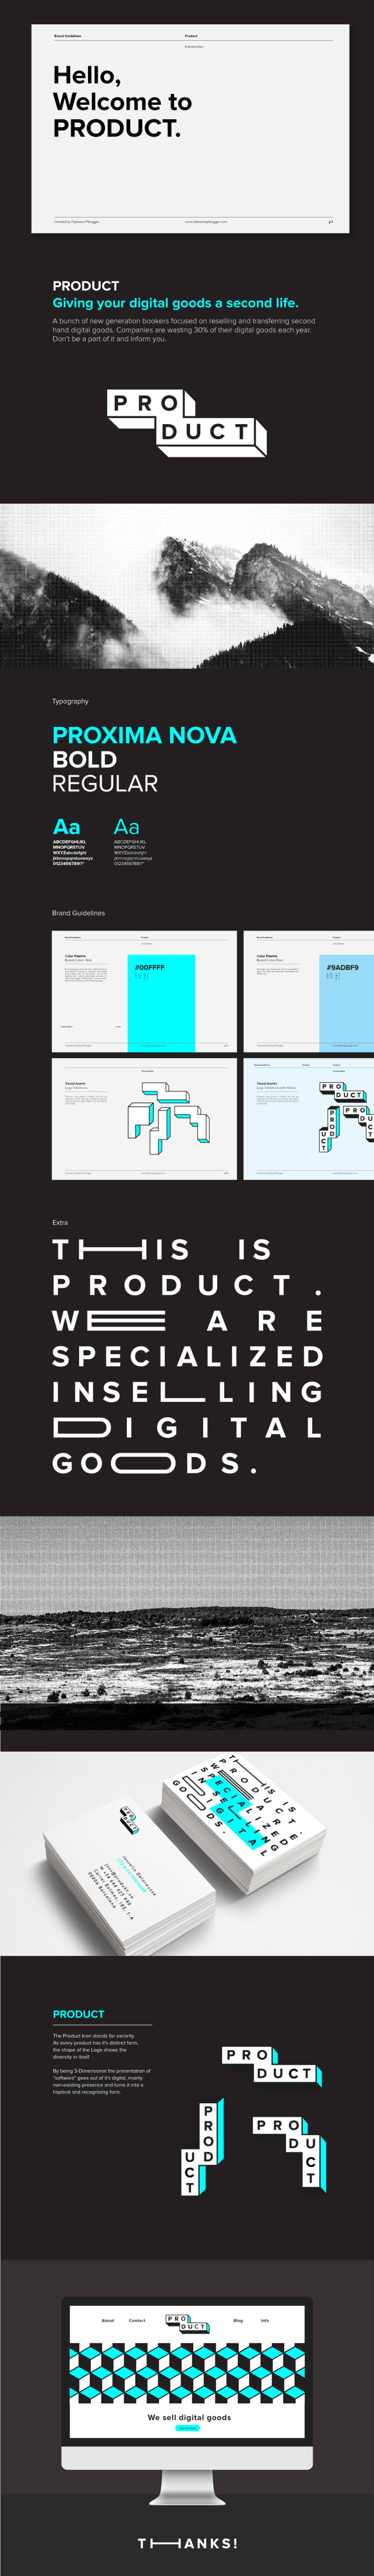 Brand Identity for Product -1